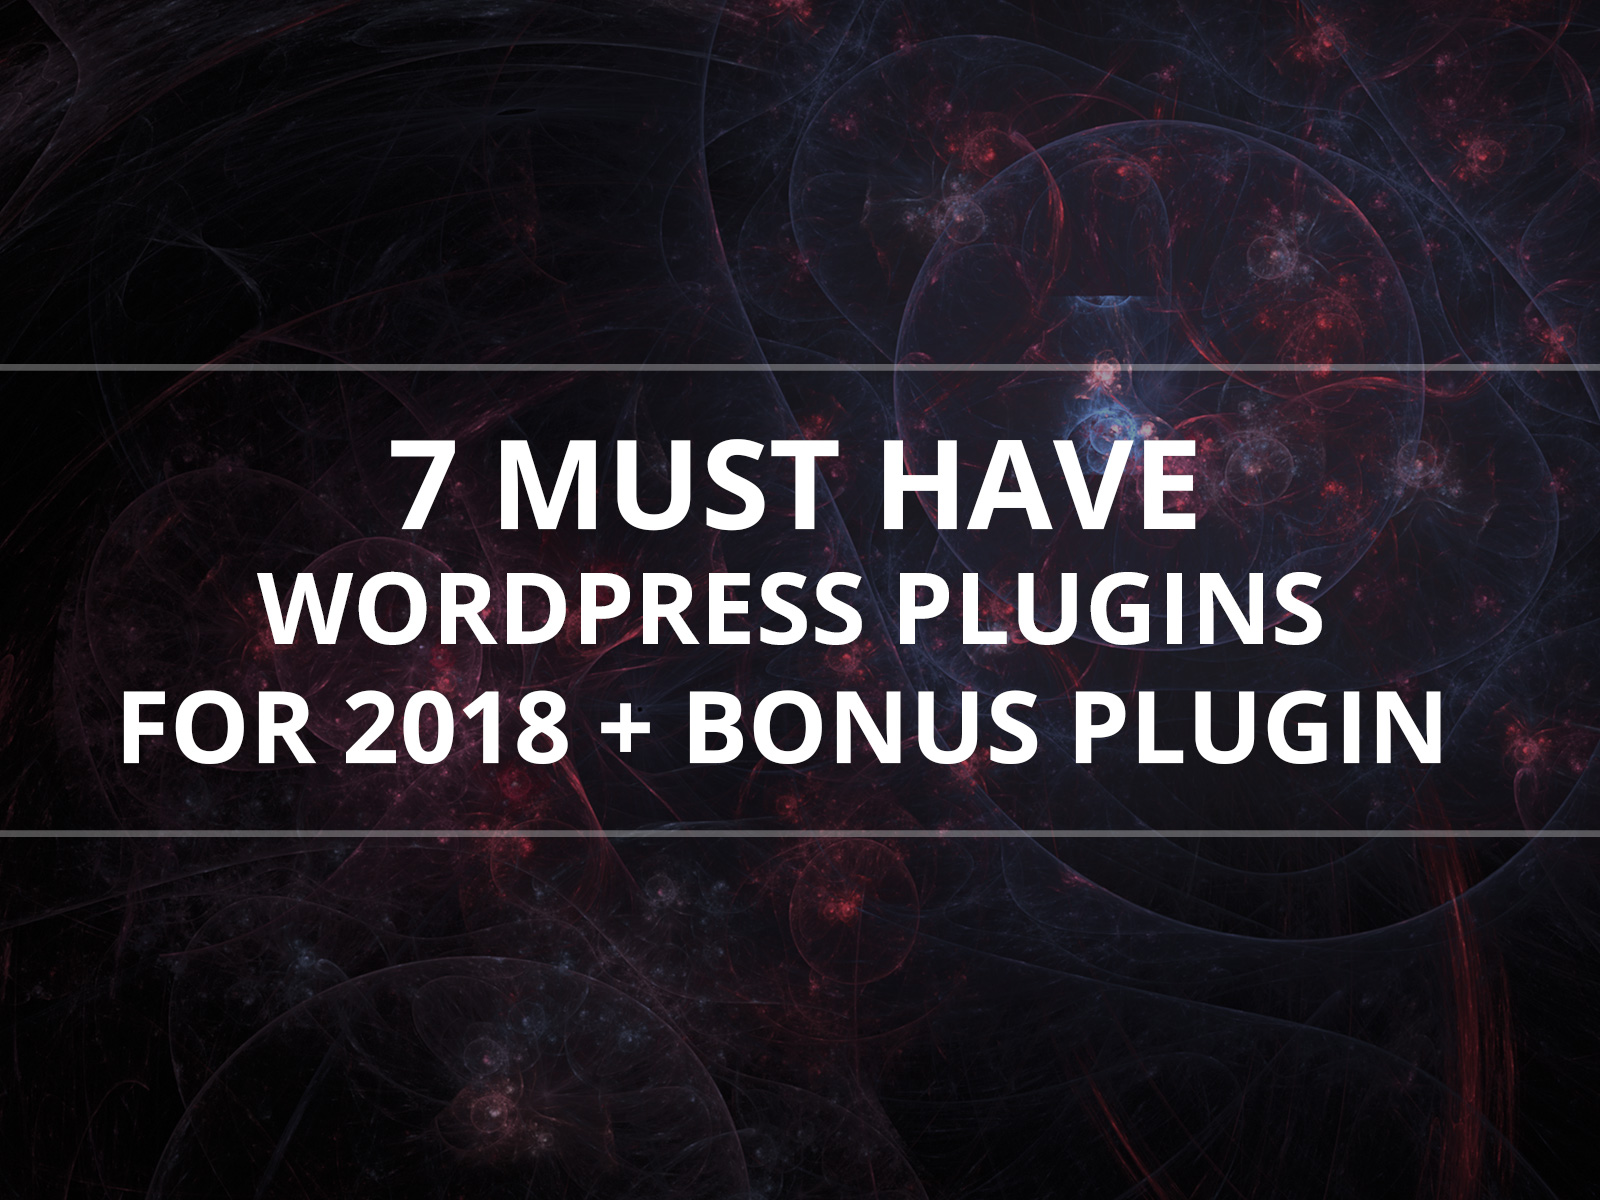 7 Must have WordPress Plugins for 2018 + a Bonus Plugin